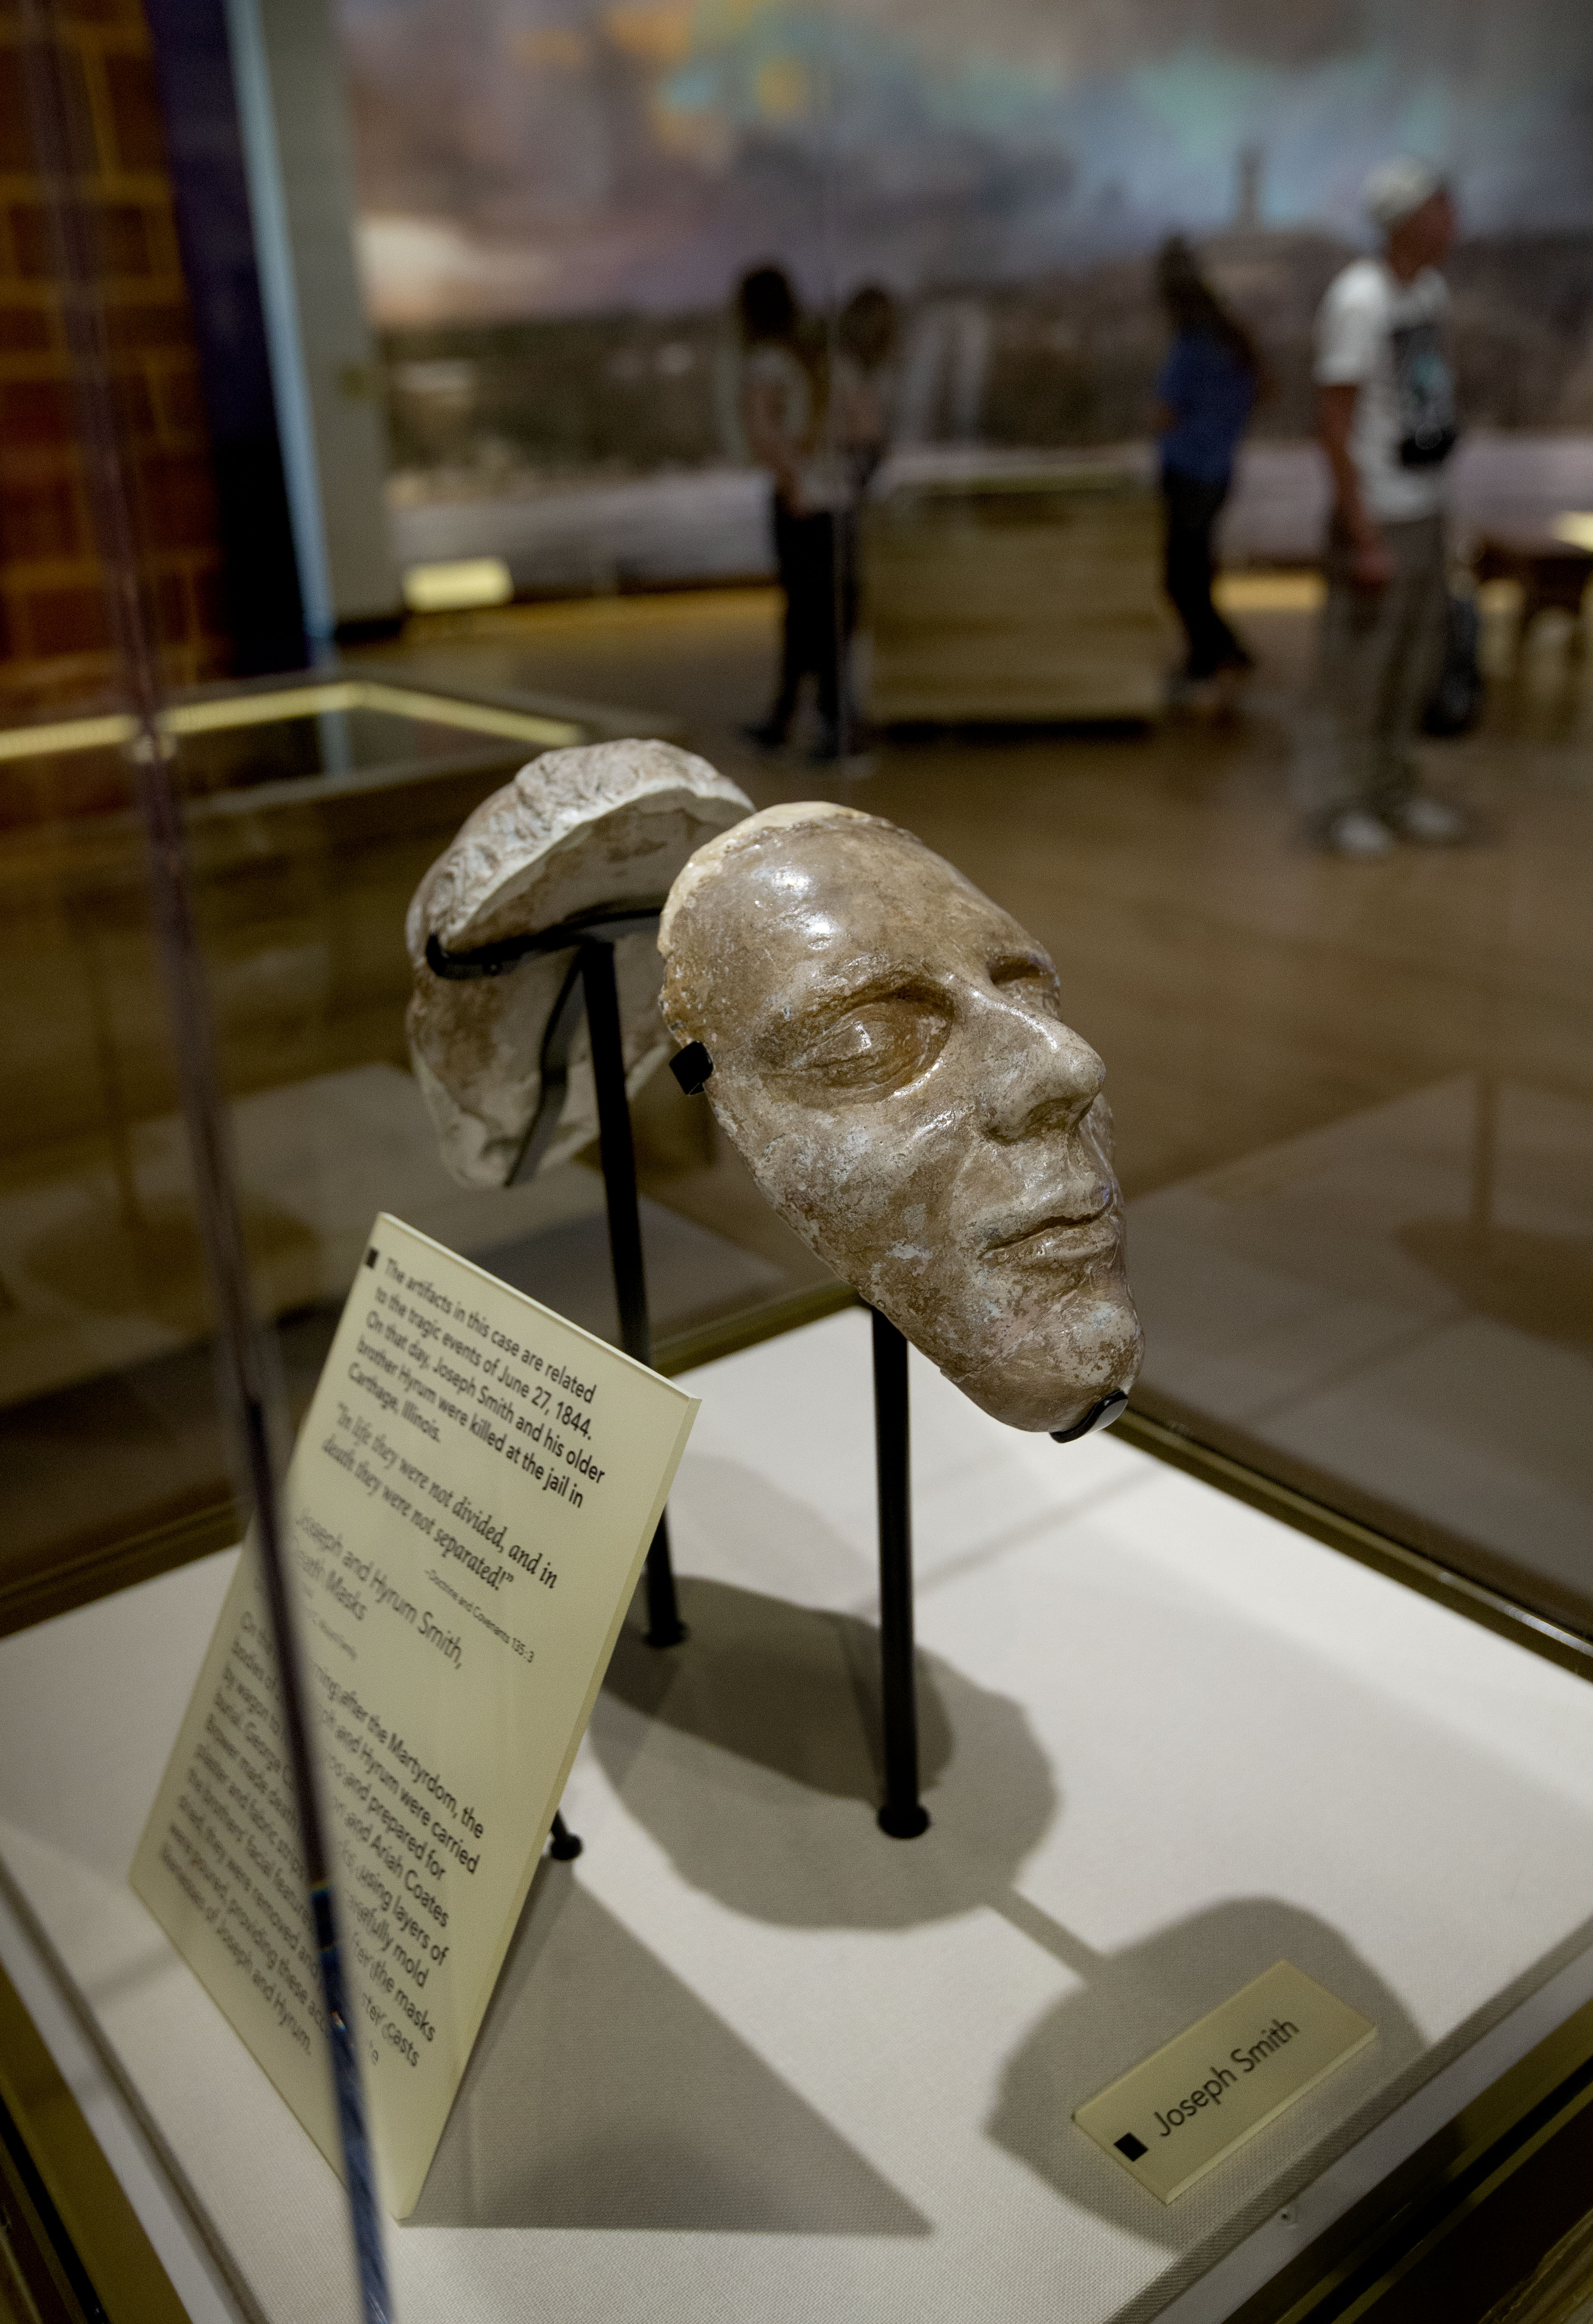 The Dibble death masks of Joseph and Hyrum Smith are displayed at the Church History Museum in Salt Lake City on Thursday, June 13, 2019.